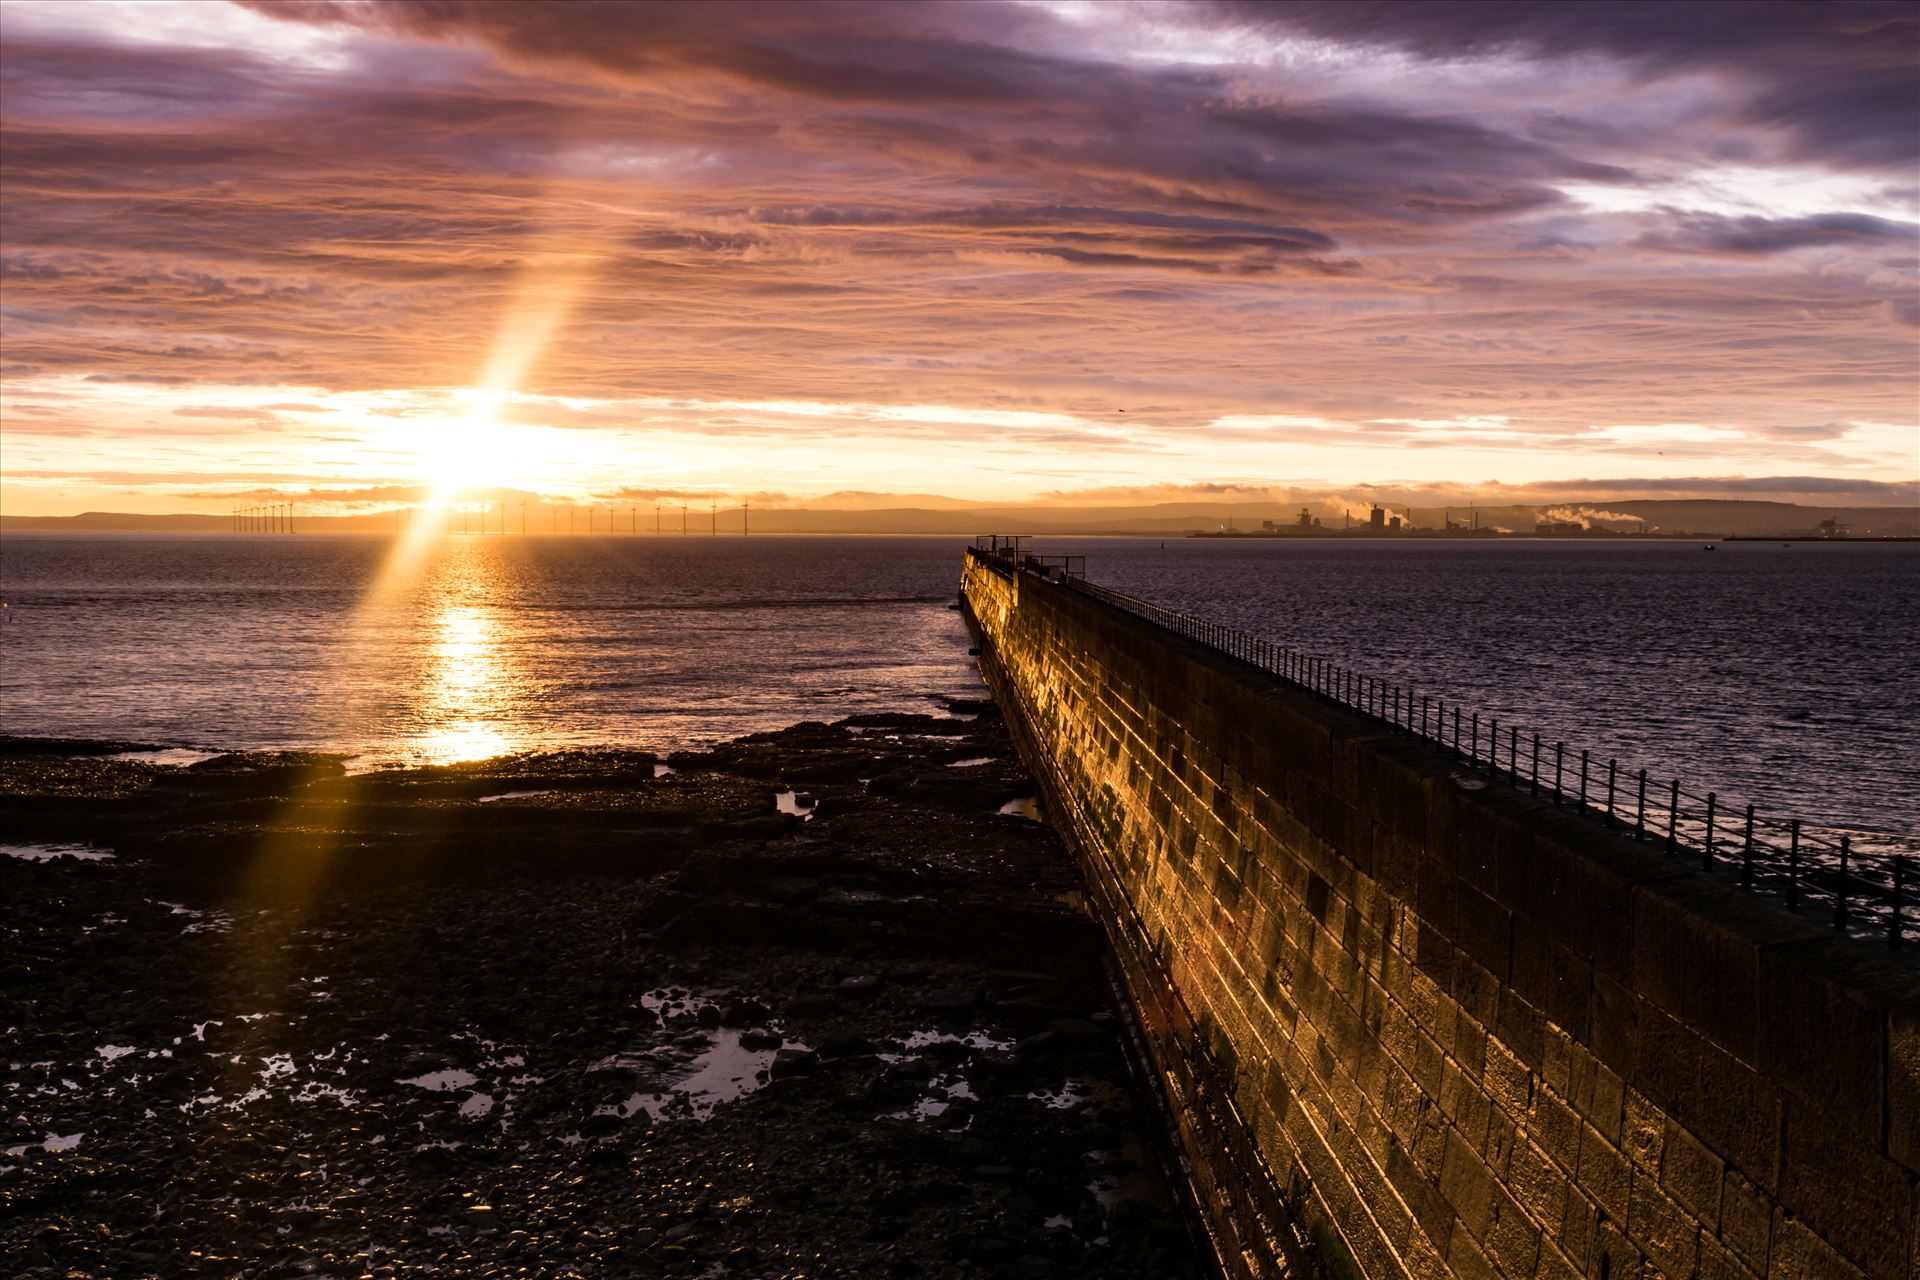 Headland Sunrise Breakwater - The Breakwater at Hartlepool Headland at sunrise by AJ Stoves Photography